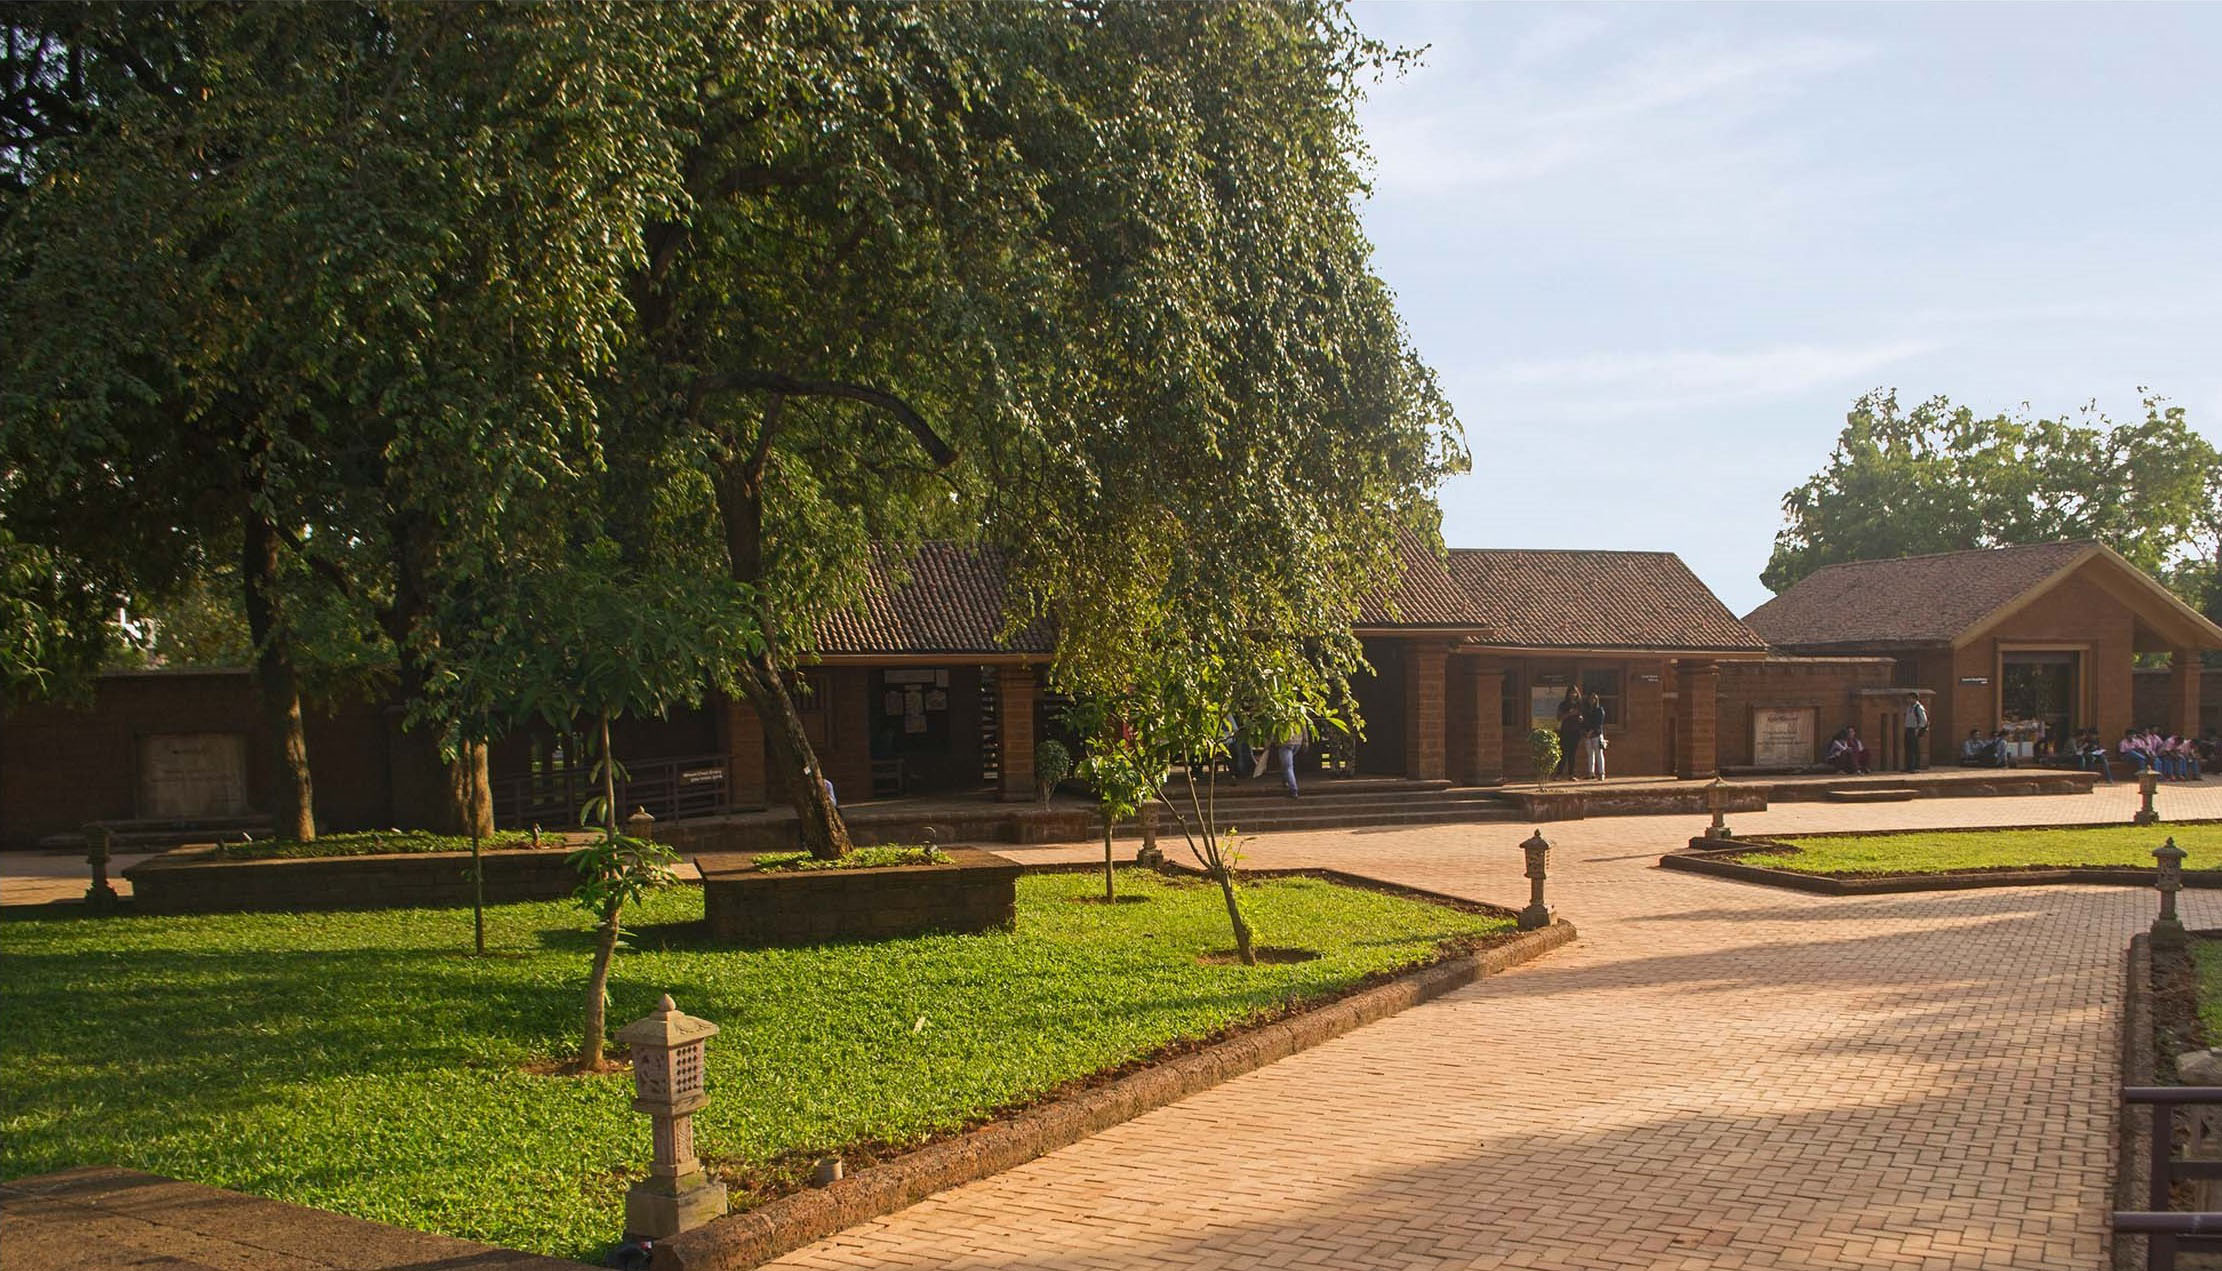 View of entrance block from pedestrian gate